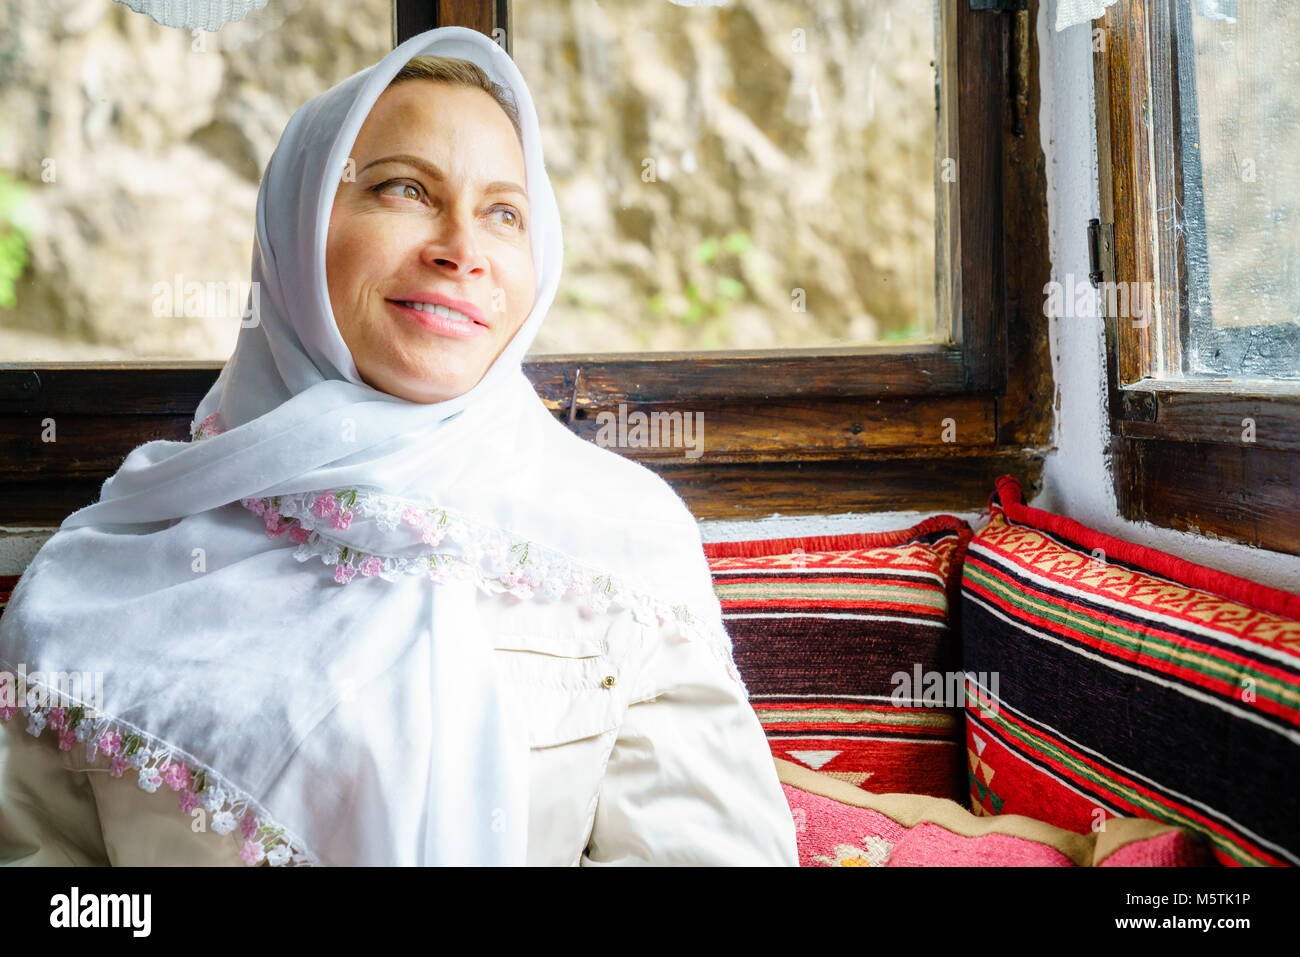 Portrait of a woman wearing traditional headscarf at a Dervish monastery in Bosnia - Stock Image